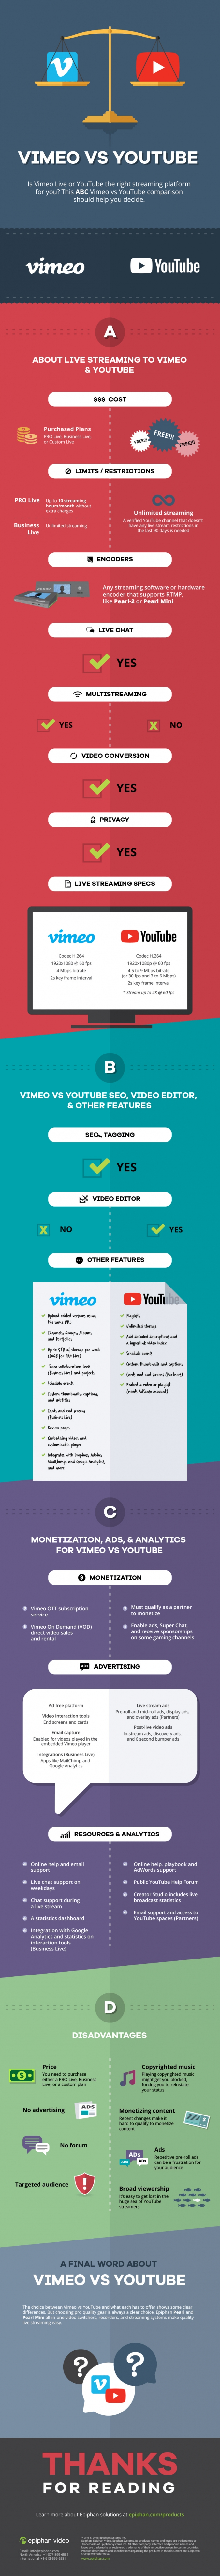 YouTube Marketing vs. Vimeo Marketing: Der Social Media Video Plattformen Vergleichs Check [Infografik]